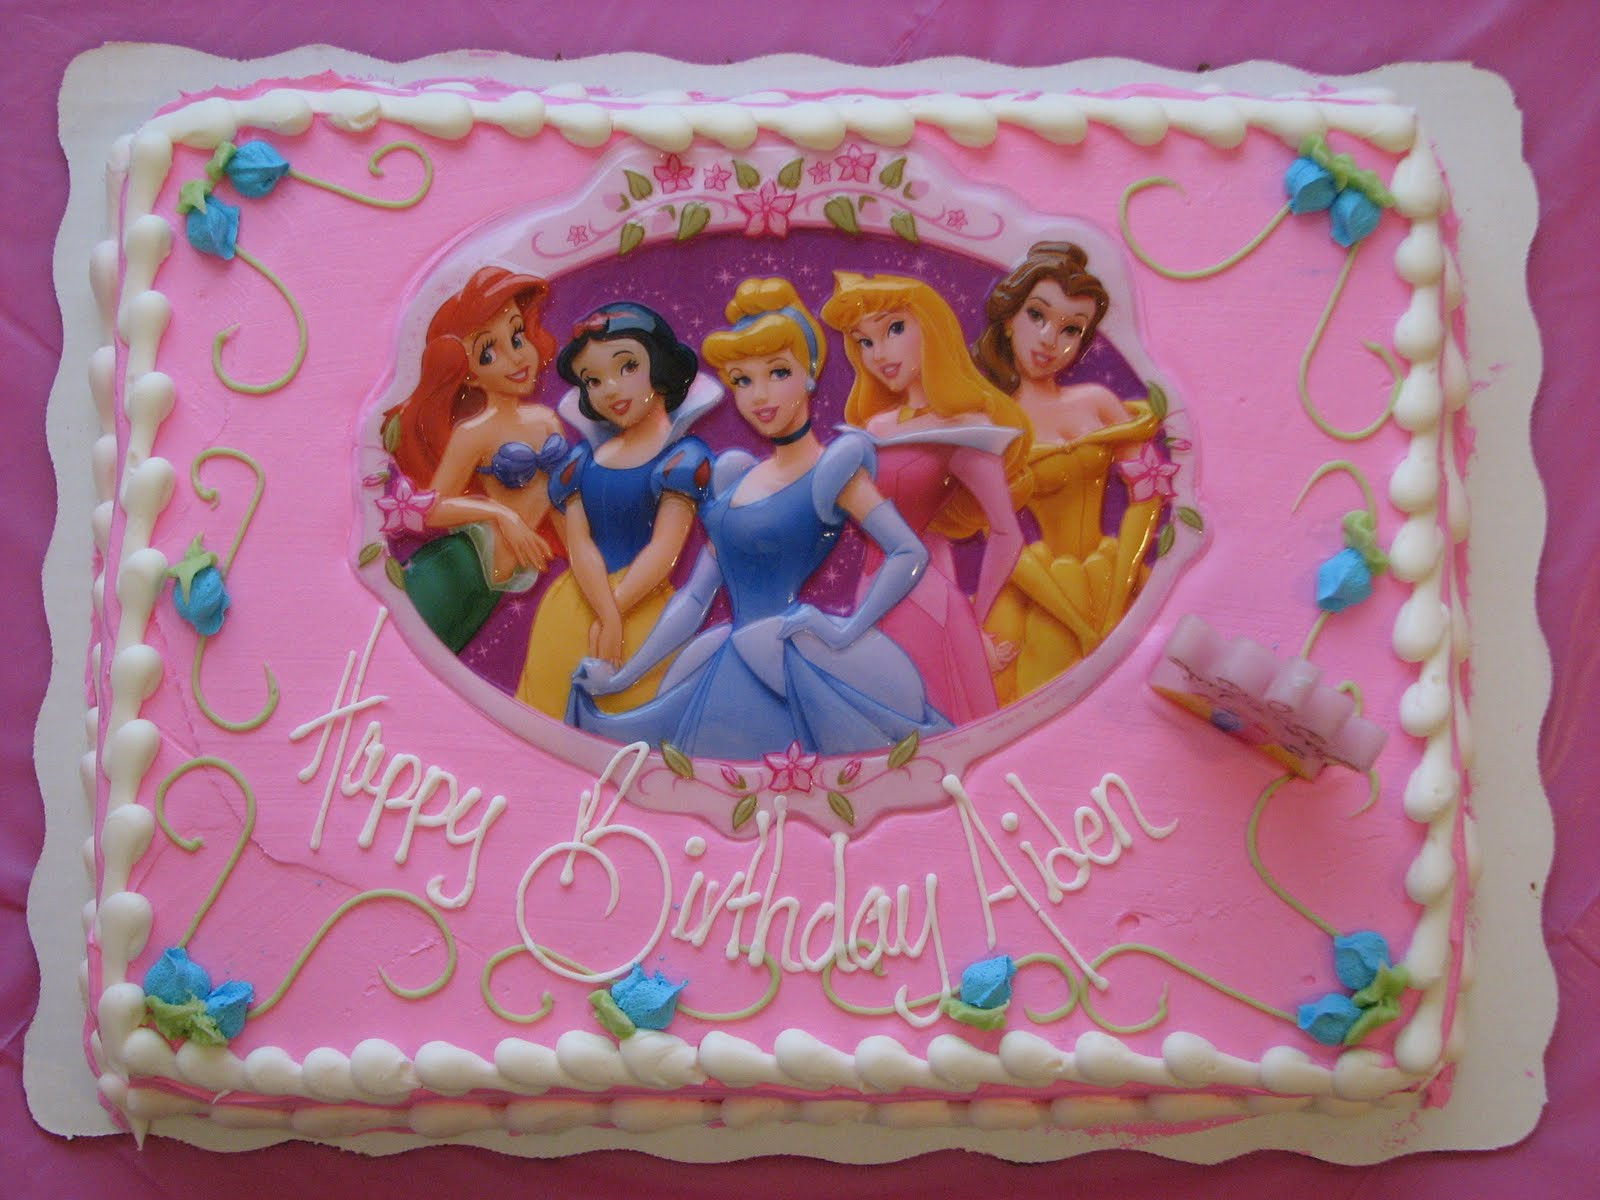 Best ideas about Sam Club Bakery Birthday Cake Designs . Save or Pin 10 Princess Birthday Cakes Sam s Club Sam Club Now.